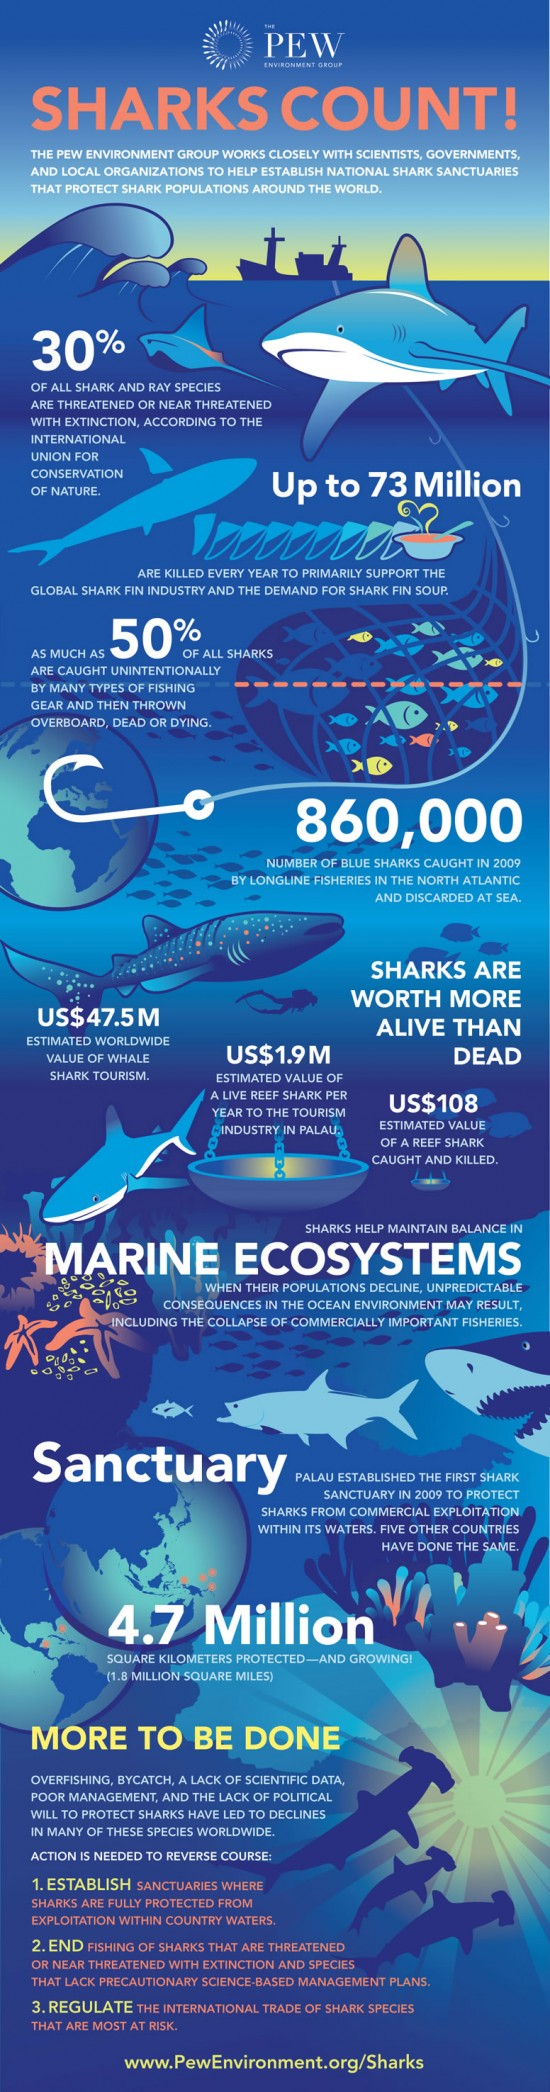 shrk-sharks-count-infographic_final-550x2092